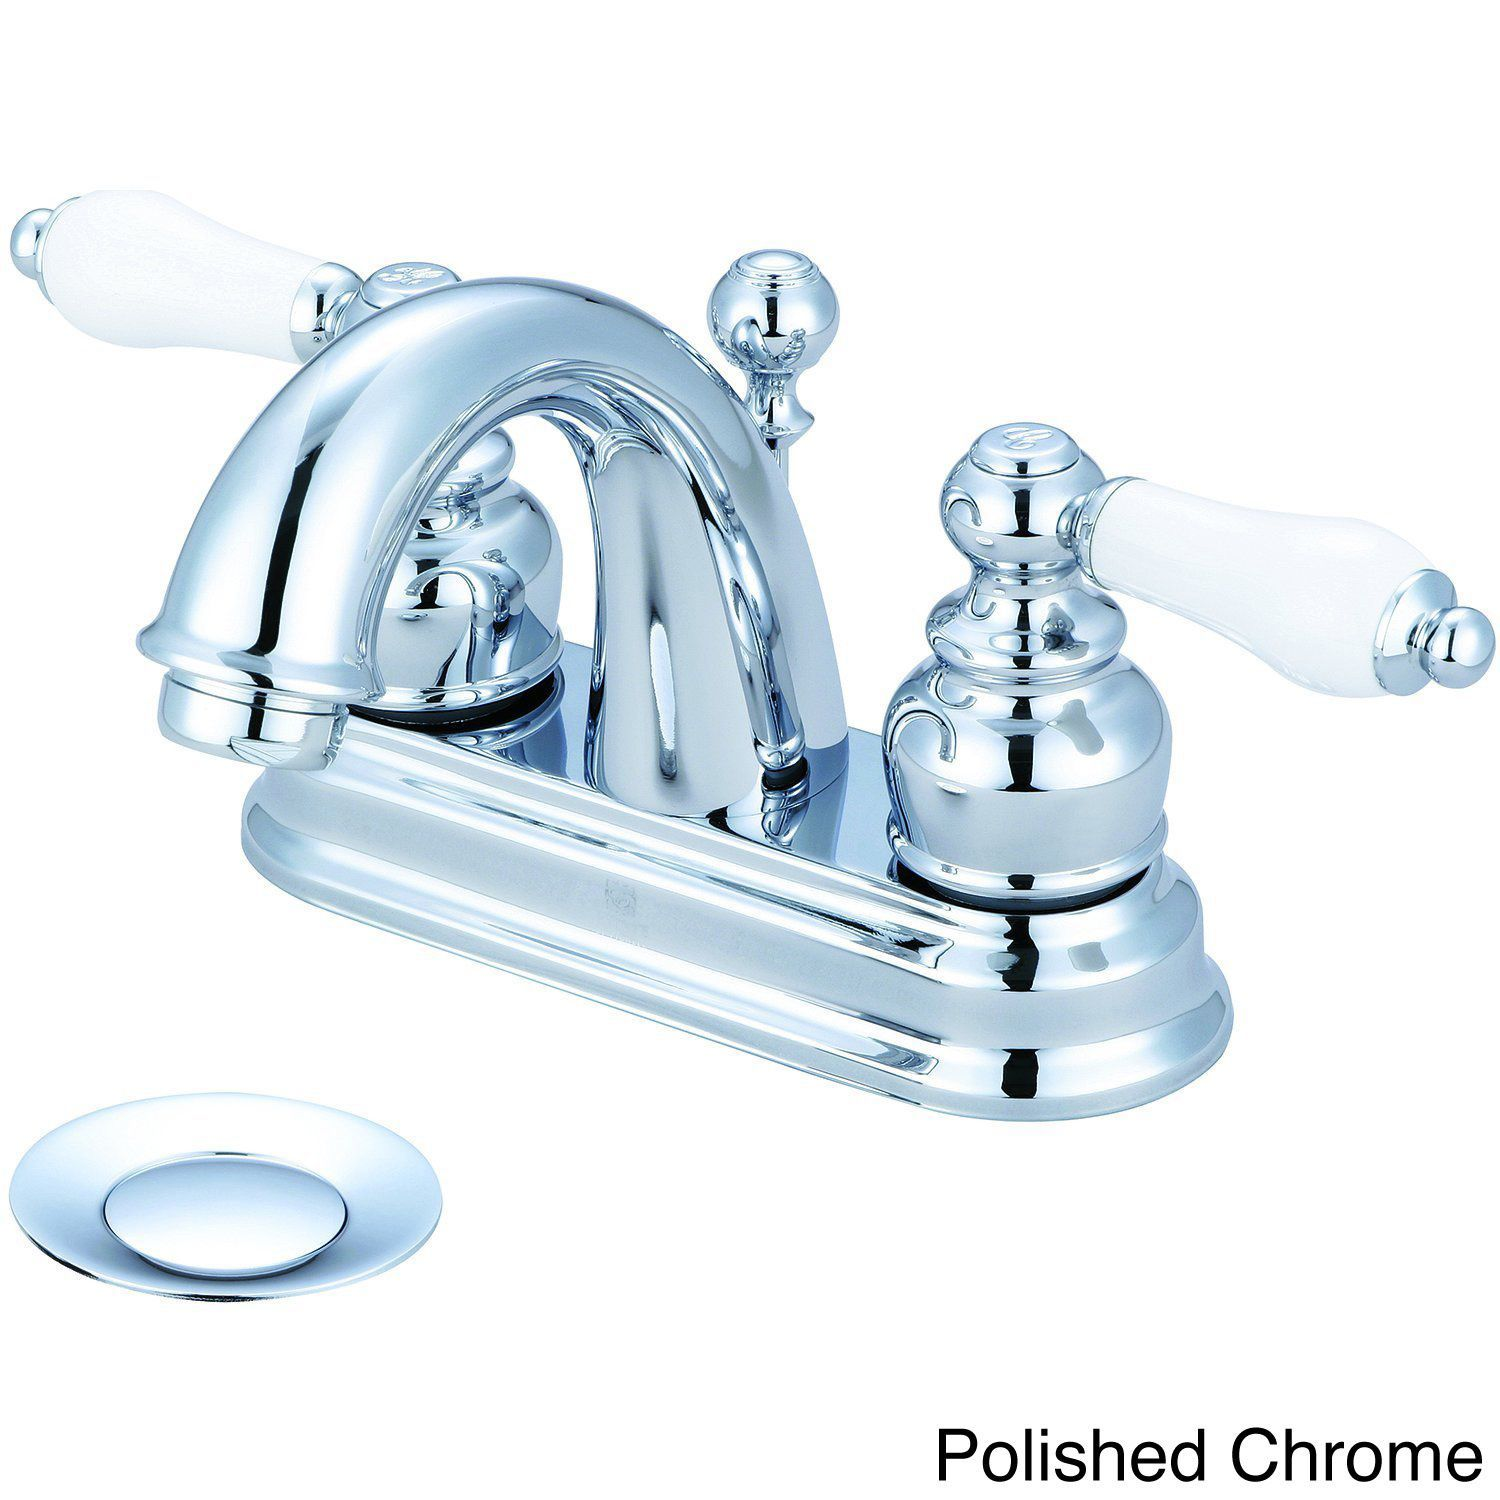 Pioneer Brentwood Series 3Br210 Doublehandle Porcelain Handles Cool Porcelain Handle Bathroom Faucet Inspiration